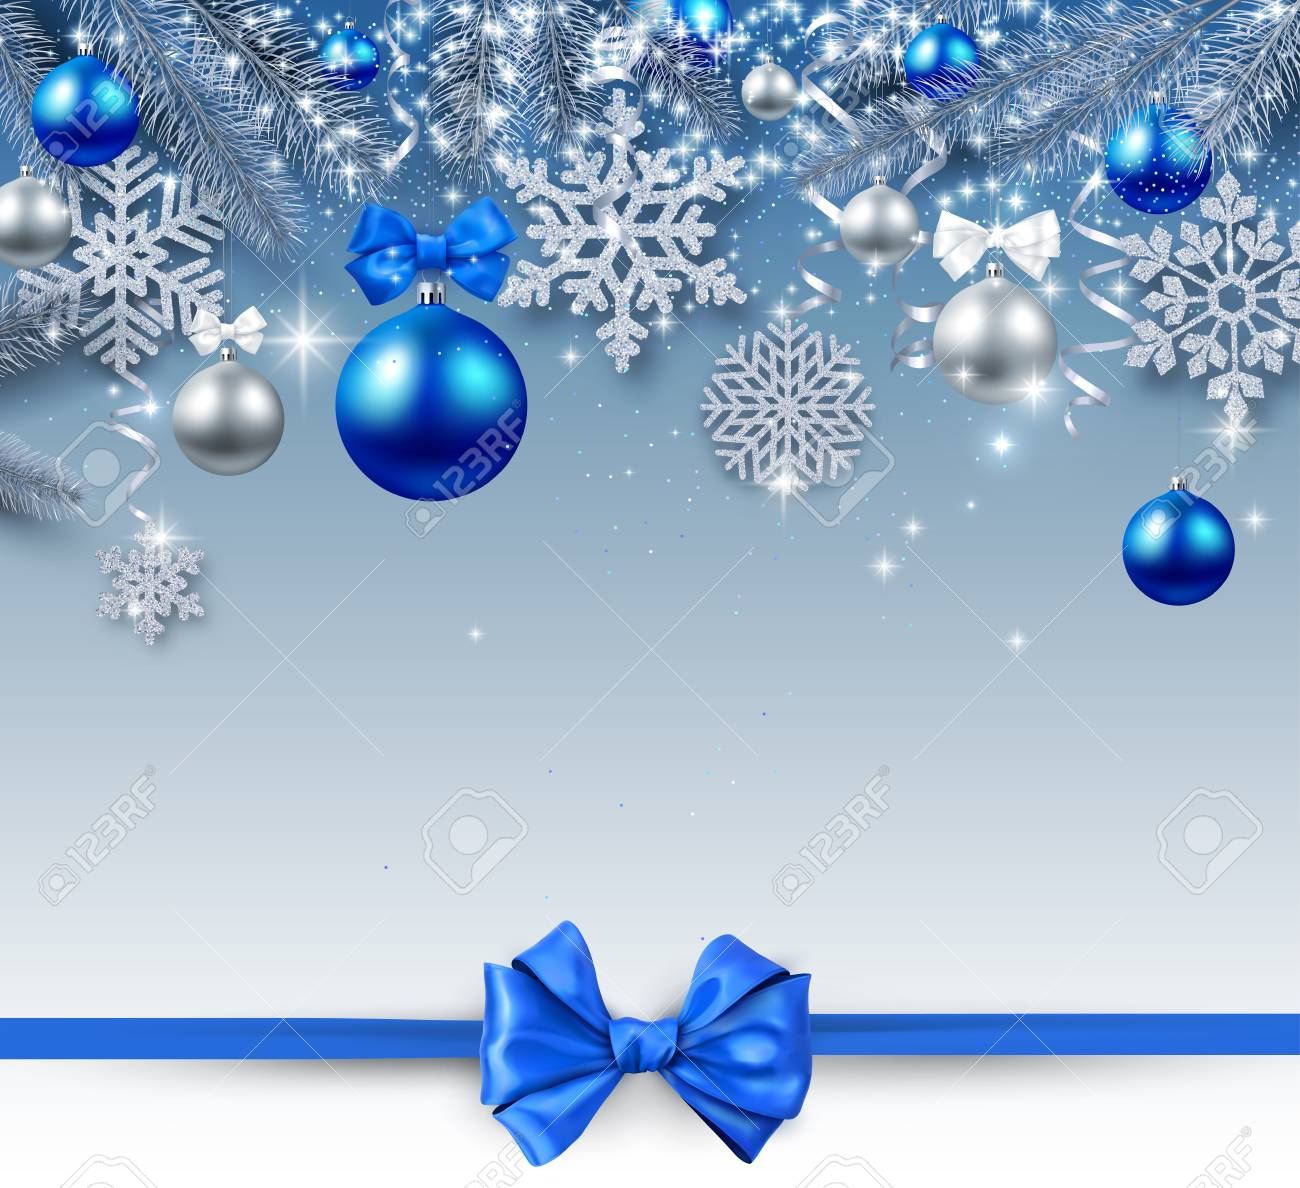 Christmas and New Year shiny card with silver Christmas balls, snowflakes and blue satin ribbon with bow. Vector background. - 127730975